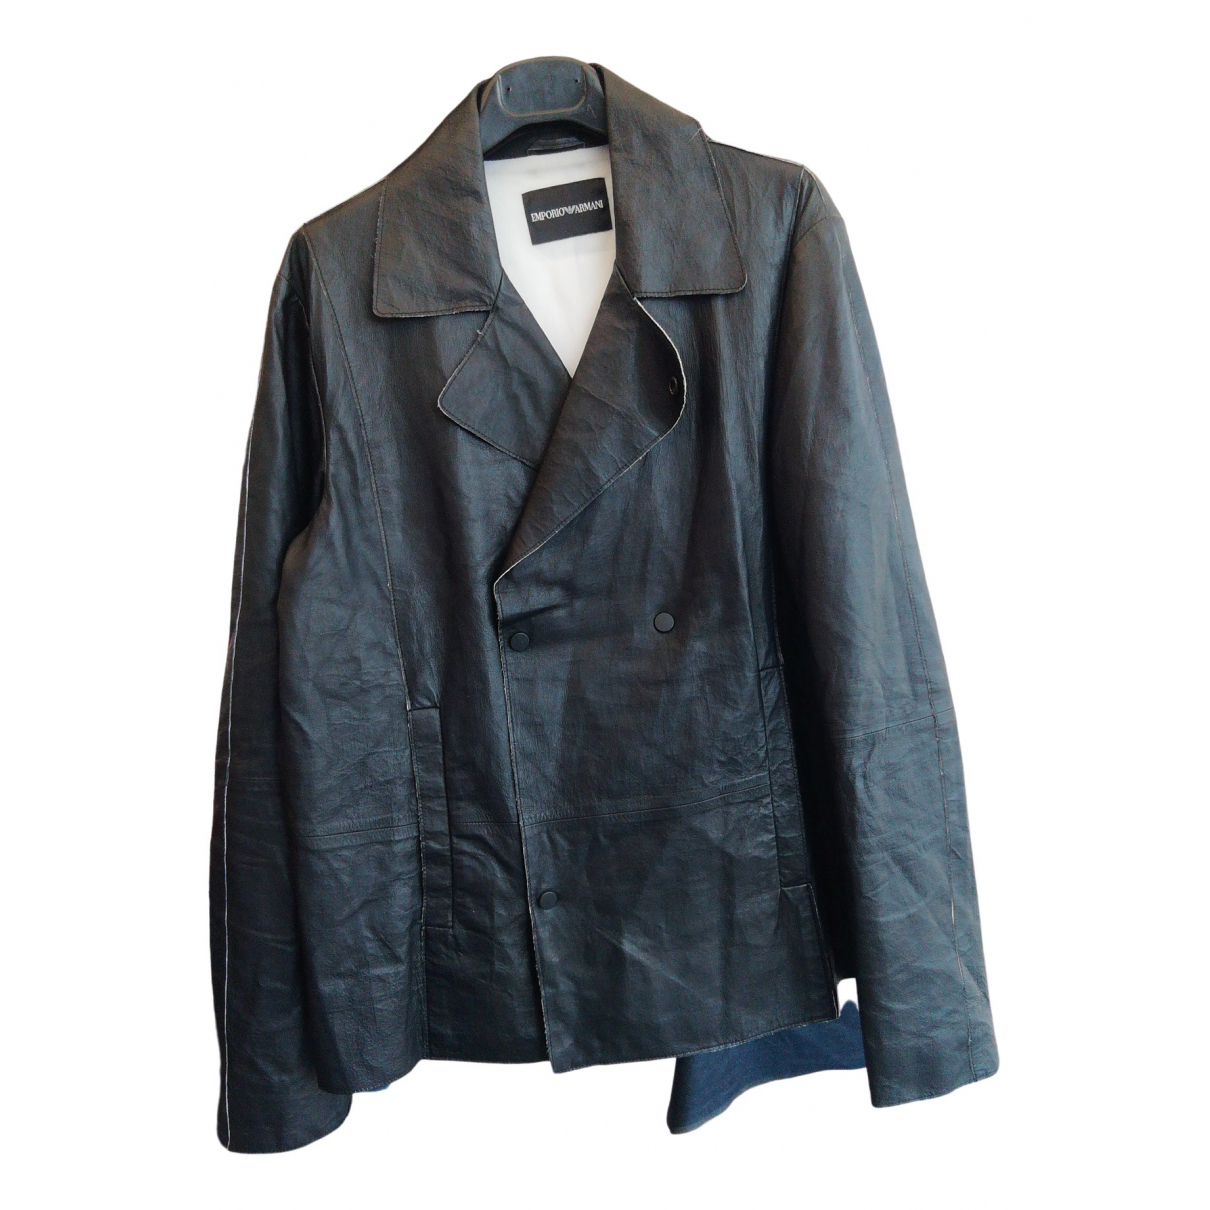 Emporio Armani \N Black Leather jacket  for Men 48 IT